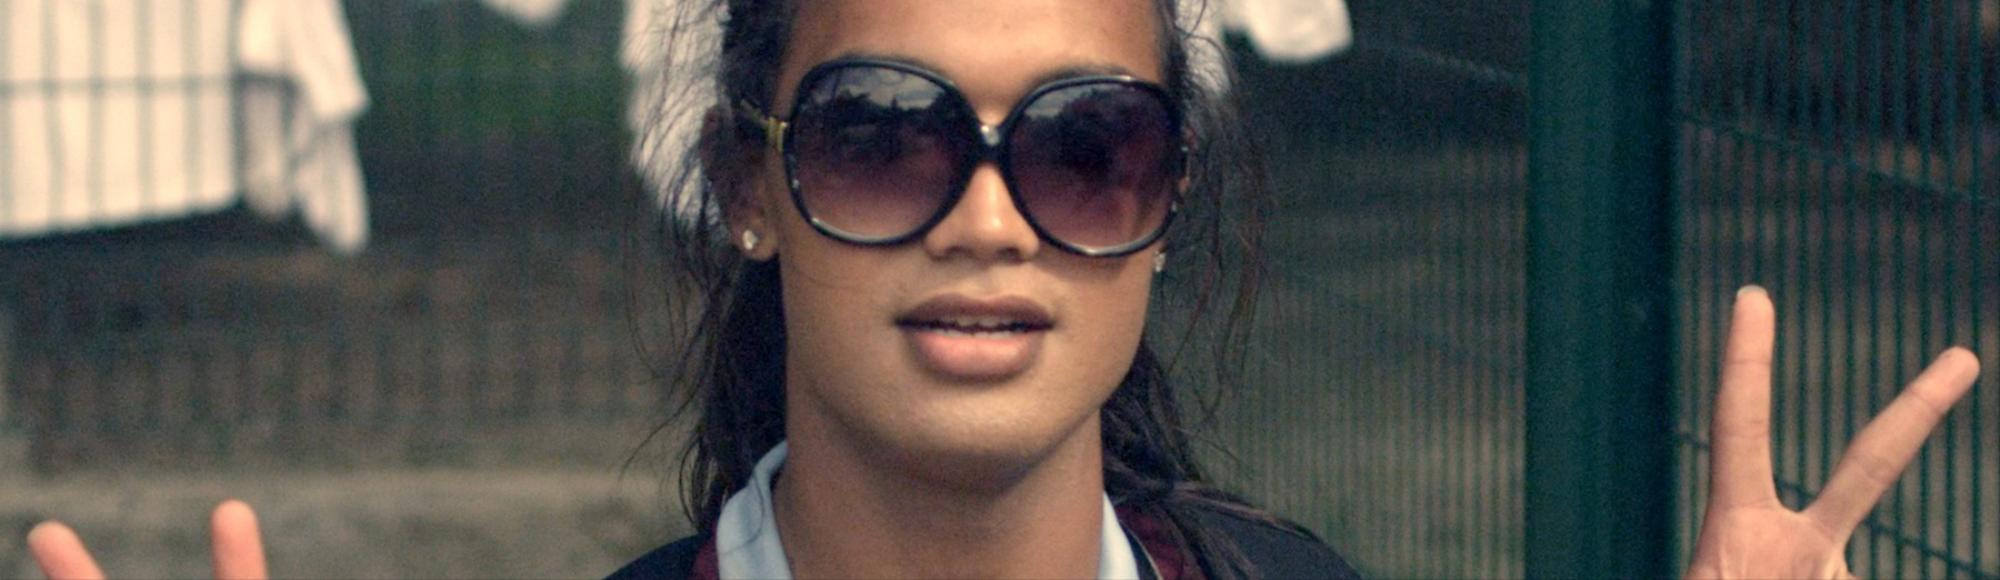 Meet the First Transgender Person to Play in a World Cup Qualifier